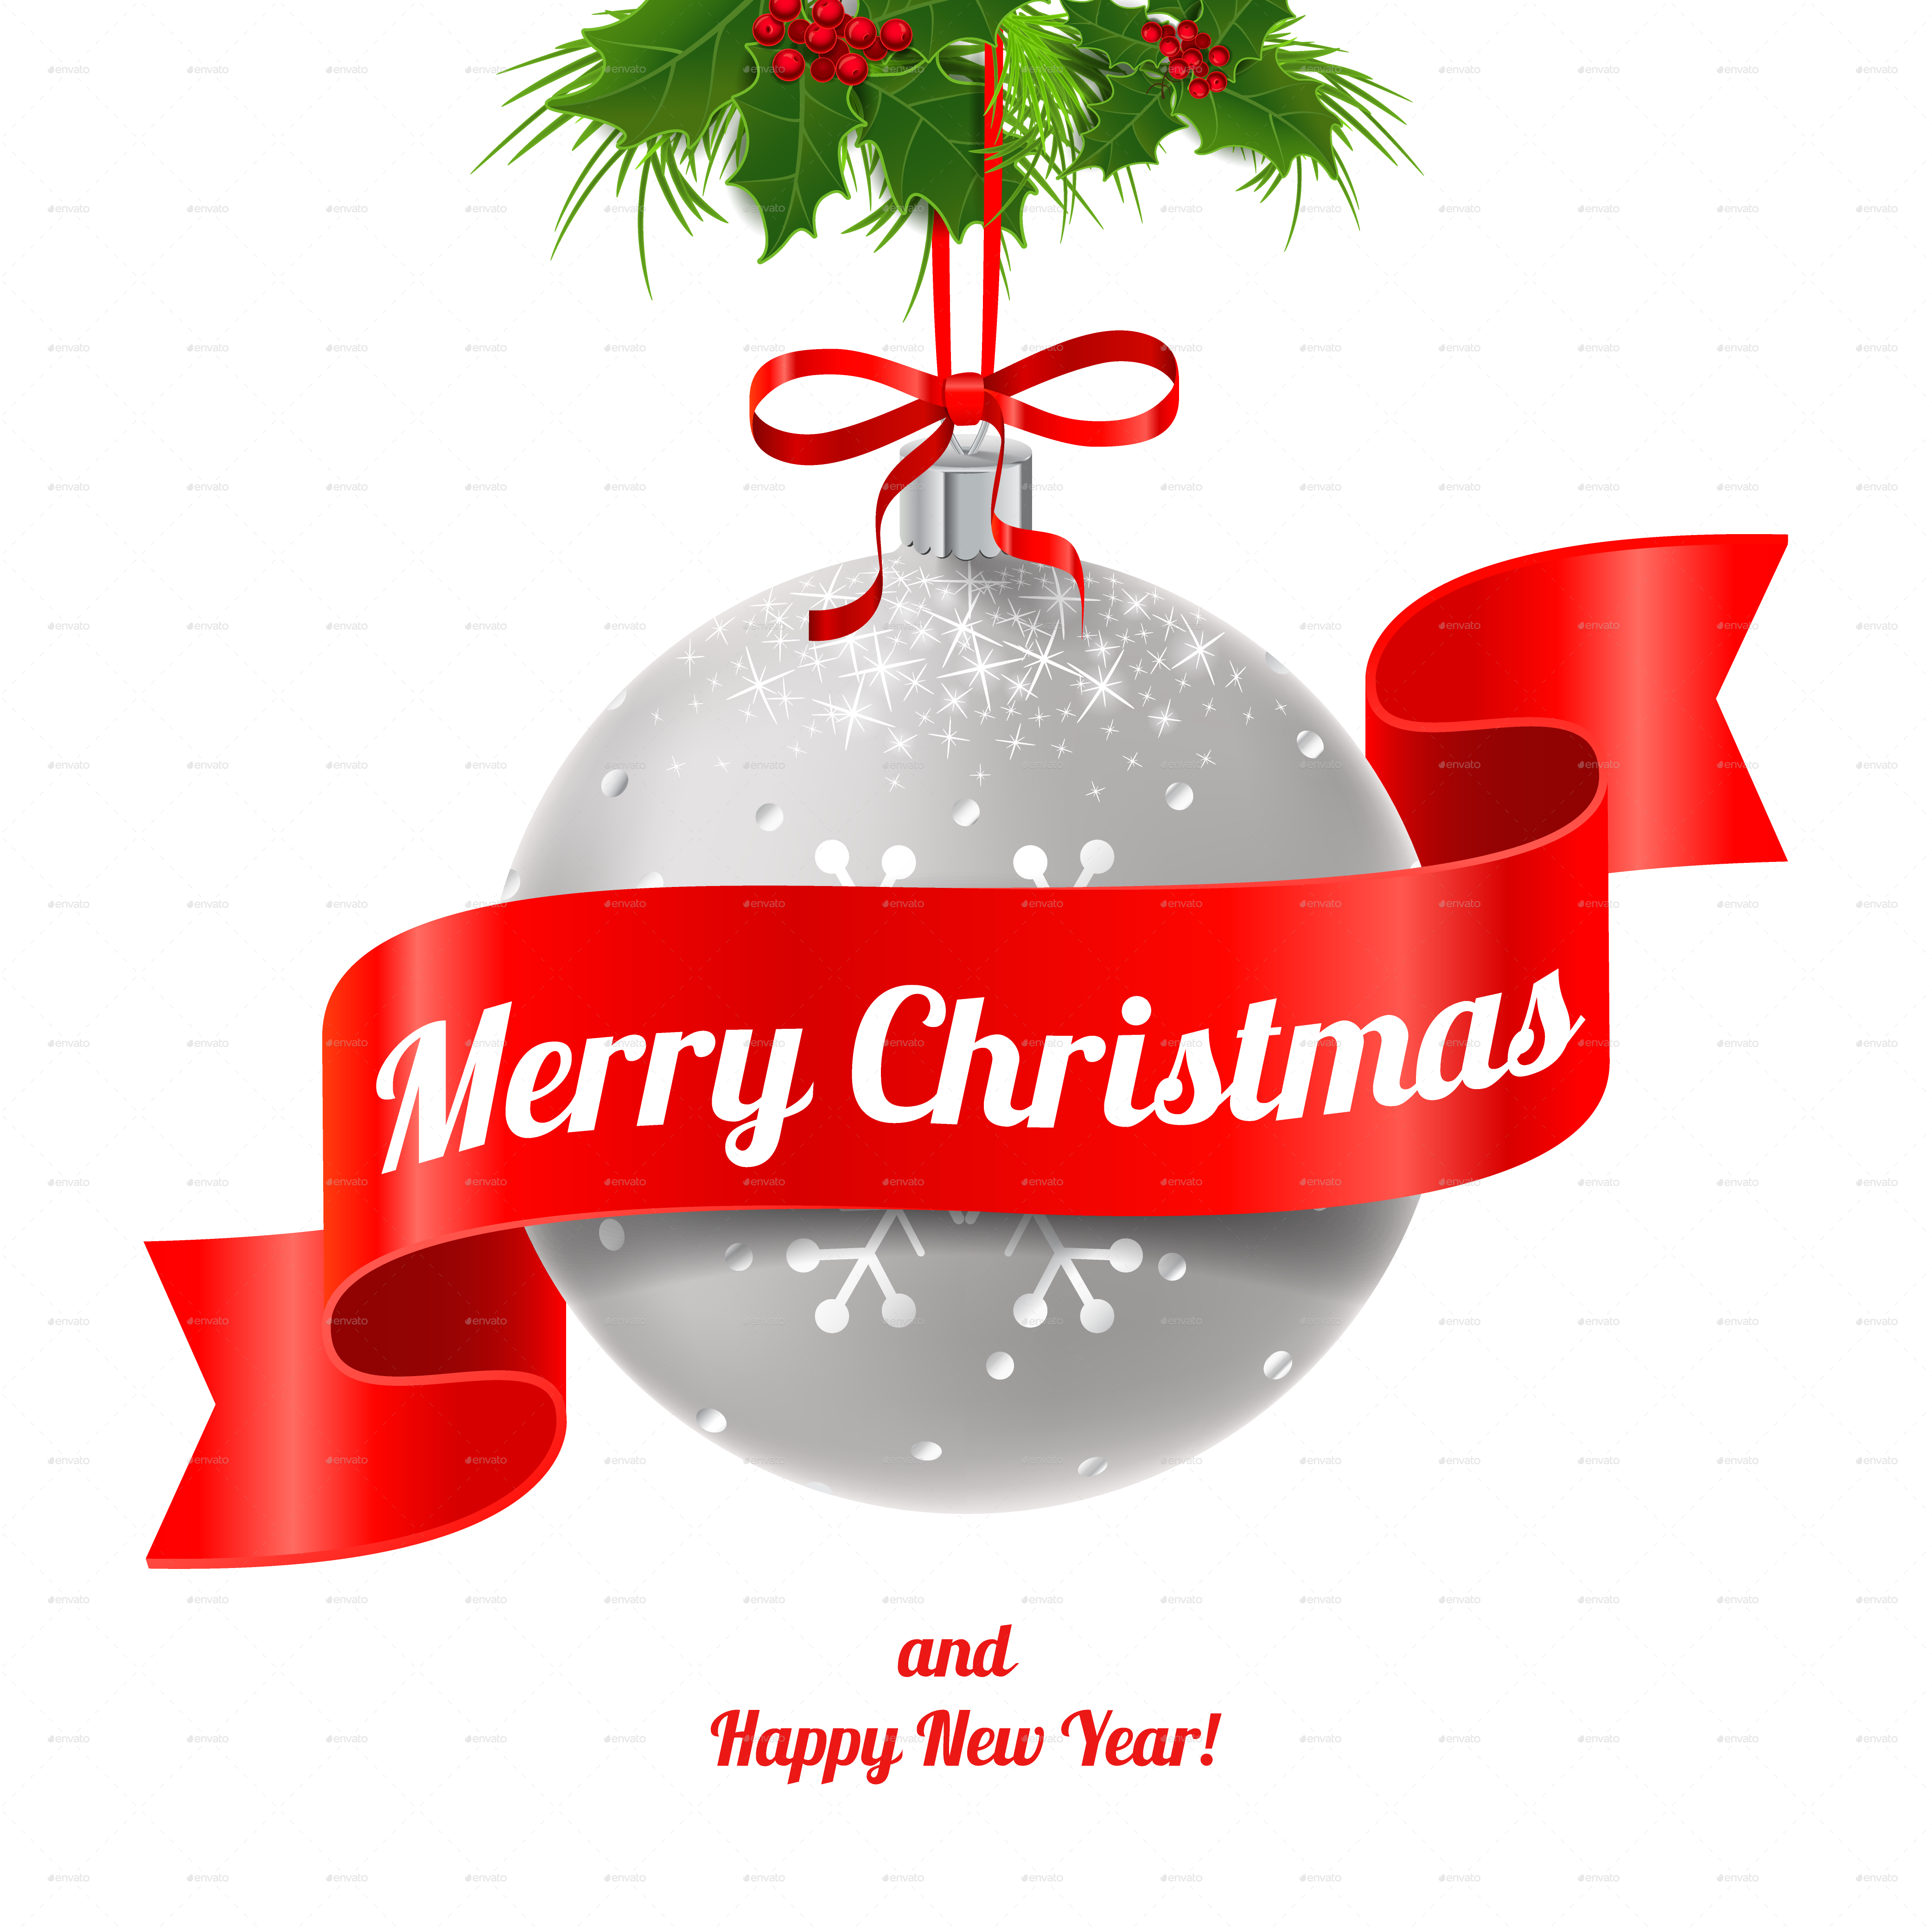 Merry christmas and happy new year images clipart images.